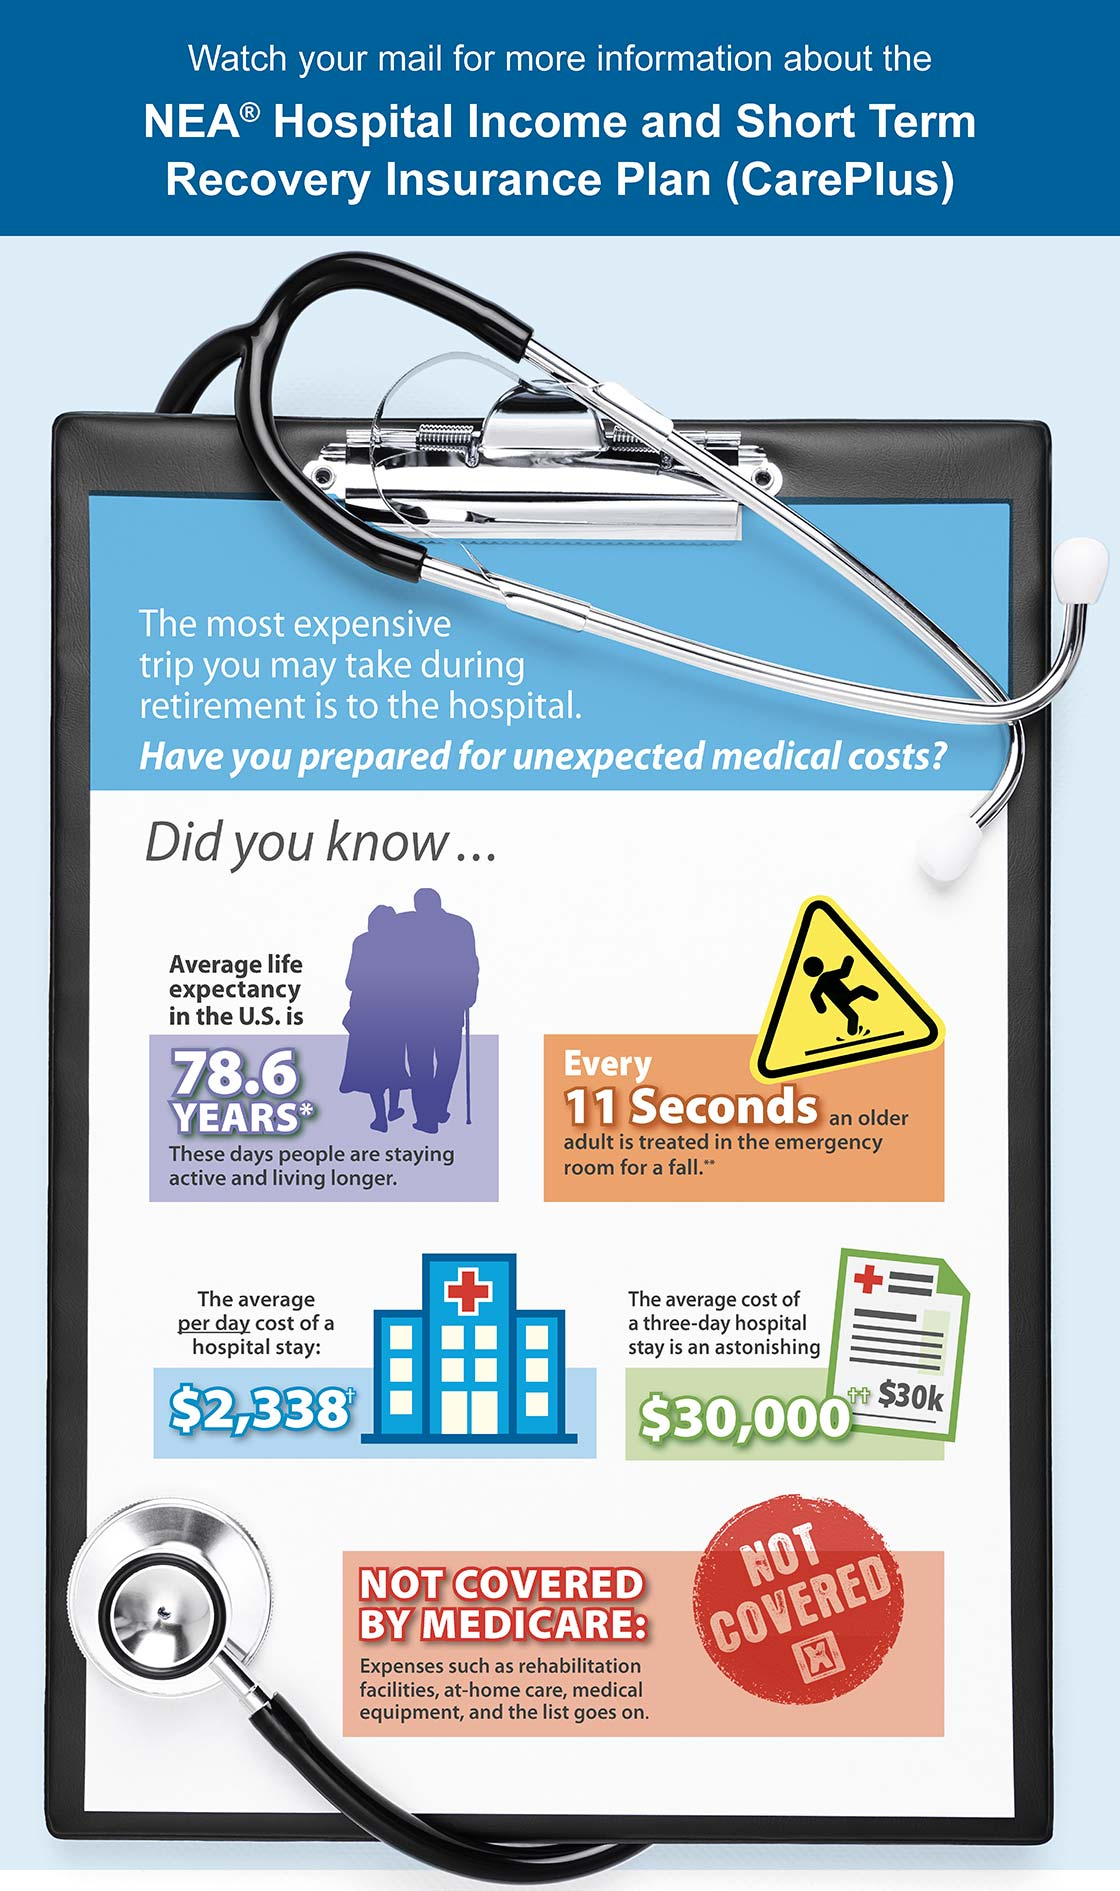 Have You Prepared for Unexpected Medical Costs?